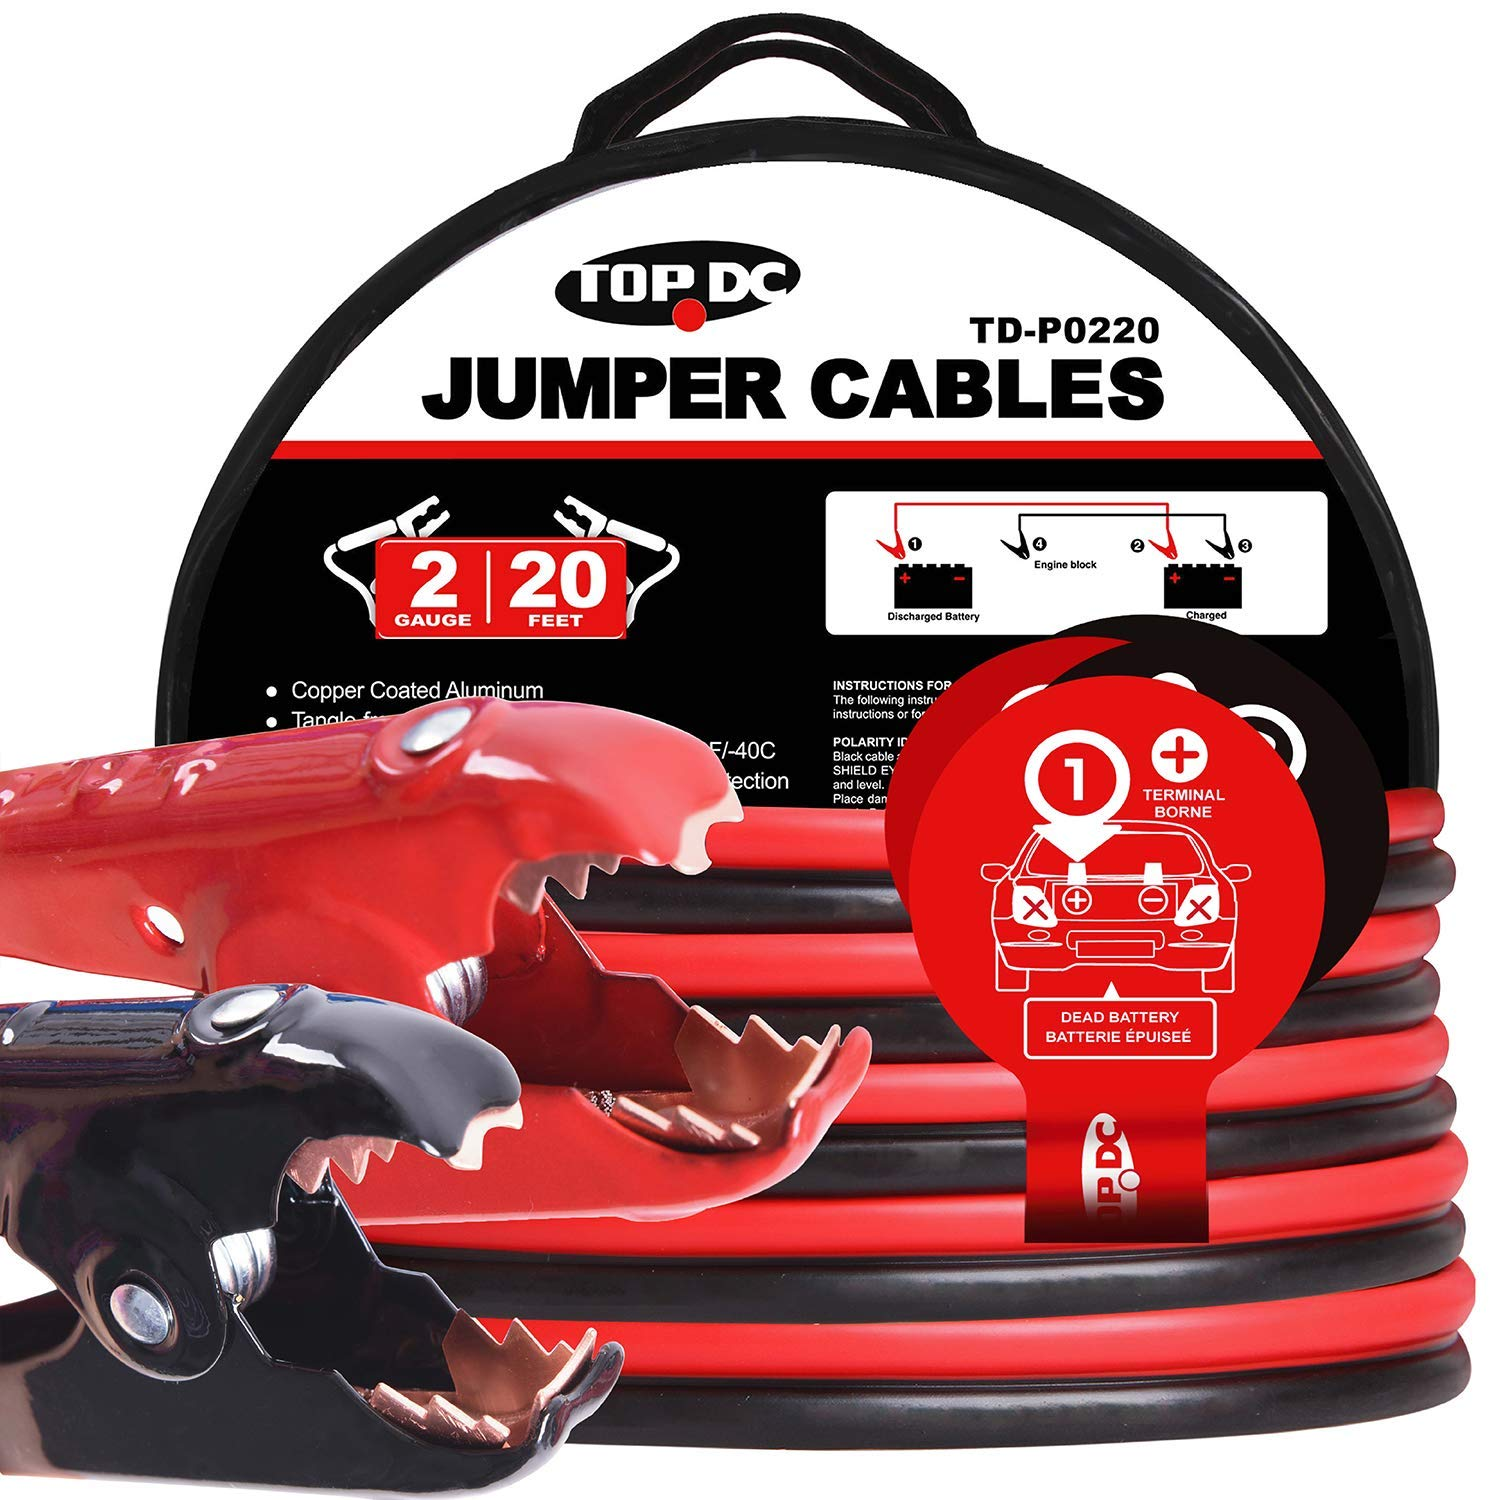 TOPDC Jumper Cables 2 Gauge 20 Feet 450Amp Heavy Duty Booster Cables with Carry Bag (2AWG x 20Ft) by TOPDC